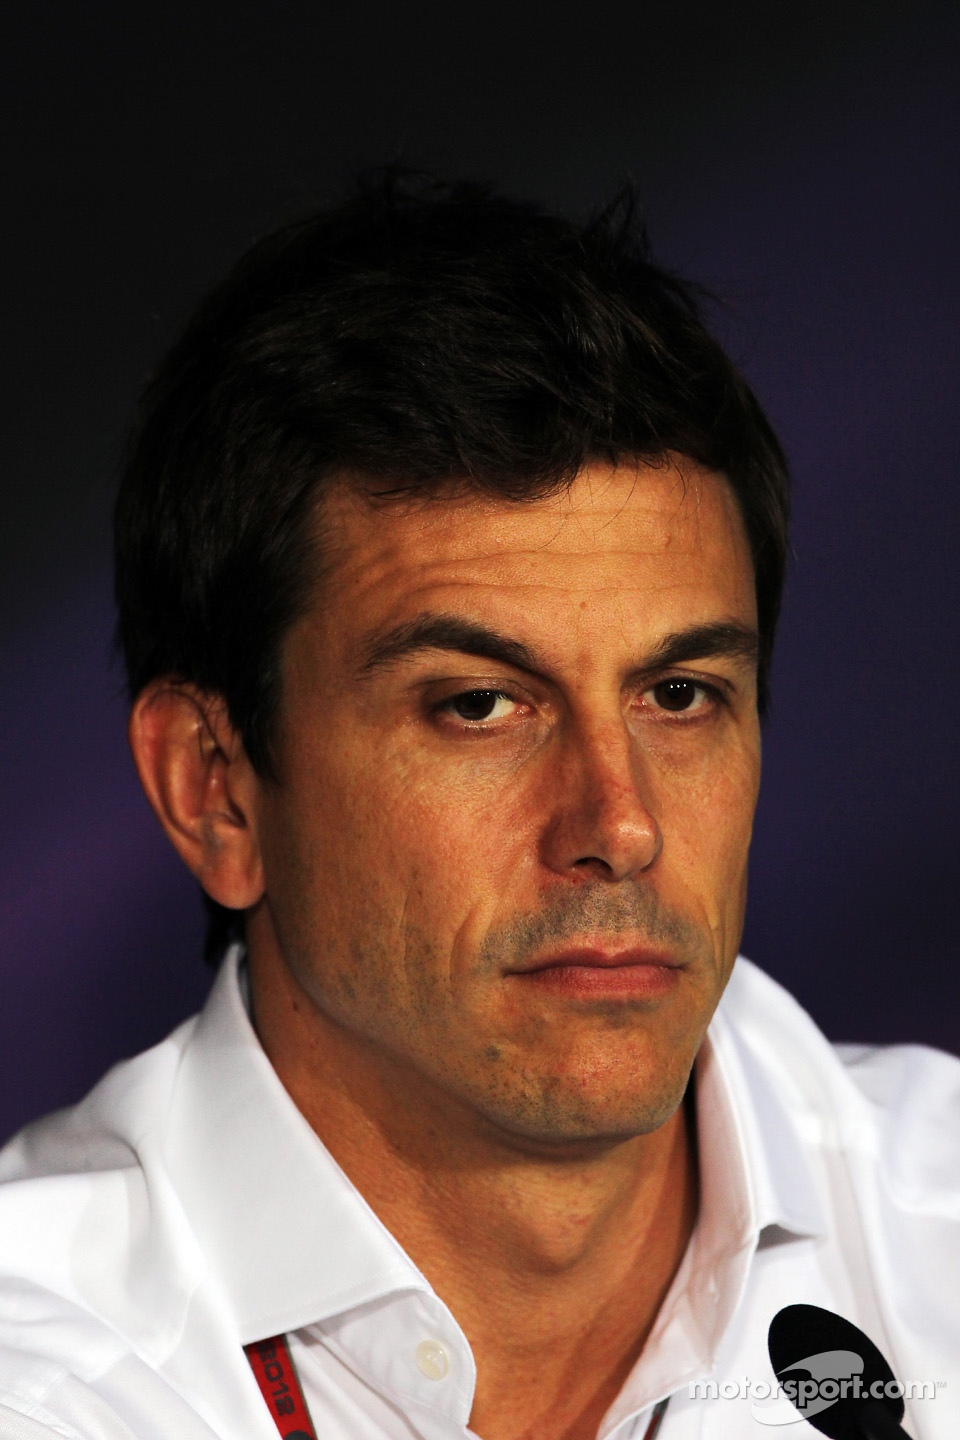 Toto Wolff, Williams Chief Executive Officer